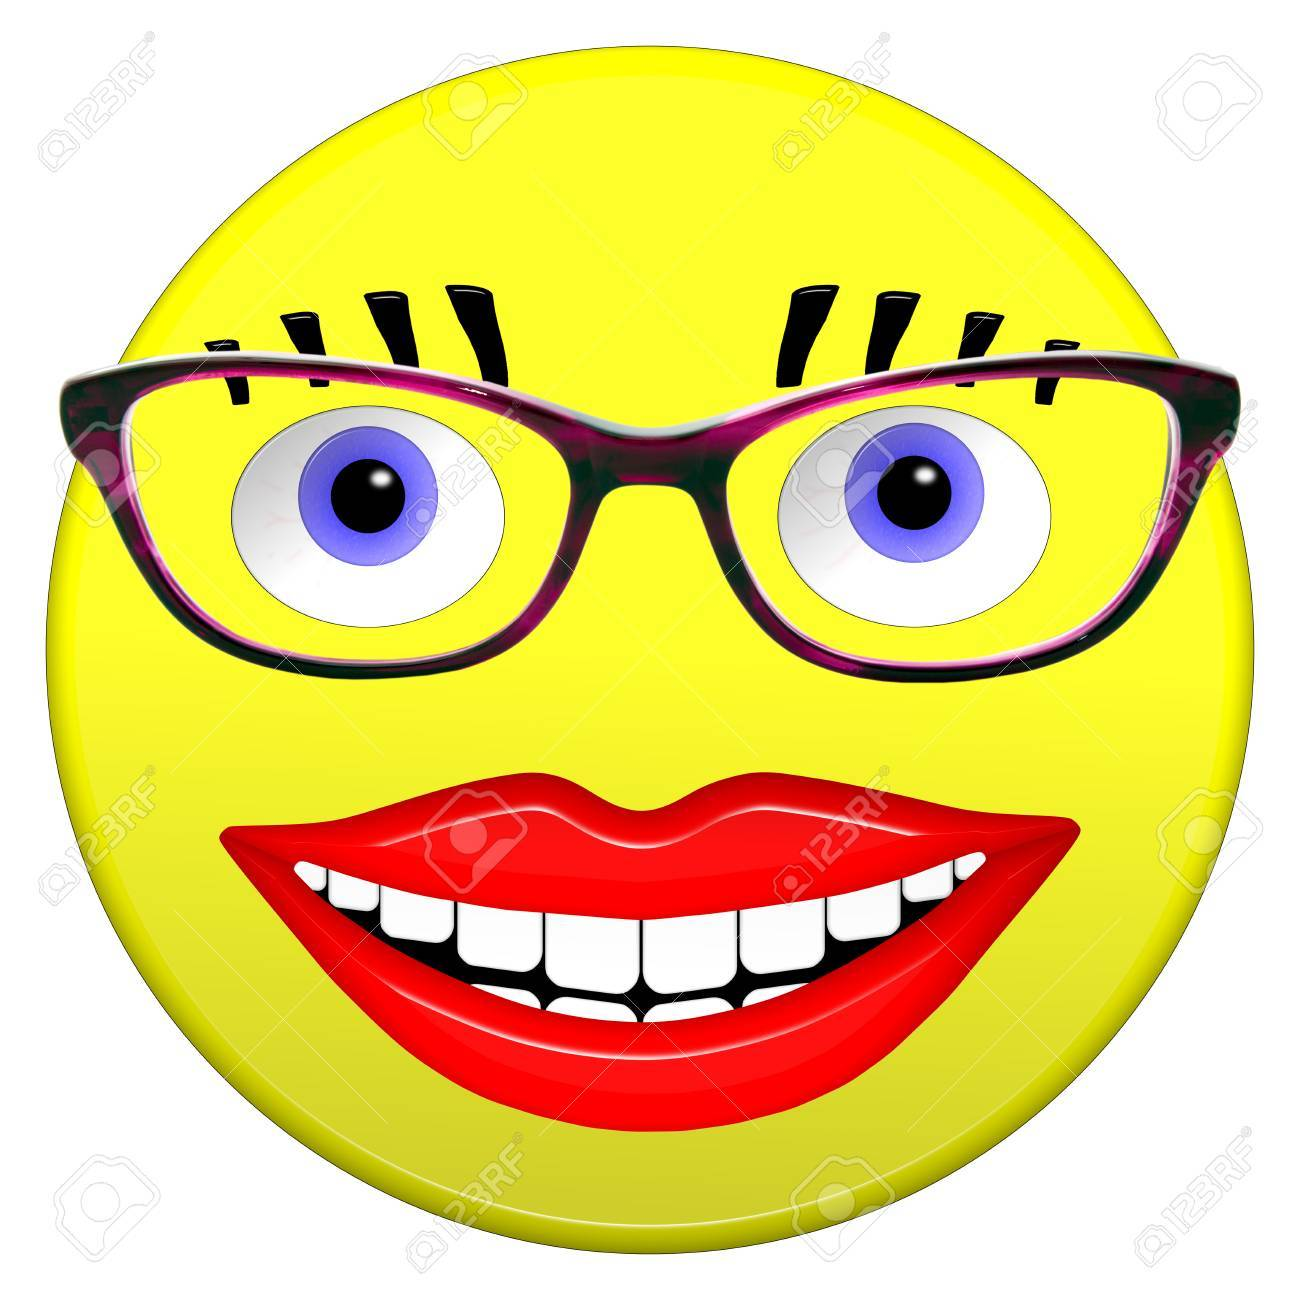 Free D Smileys on free icons, free clip art smiley faces, free music smileys, free animal smileys, free dancing smileys, free graphics smileys, sports smileys, free halloween smiley faces, office smileys, free characters, free emoticons, animated smileys, free party smileys,